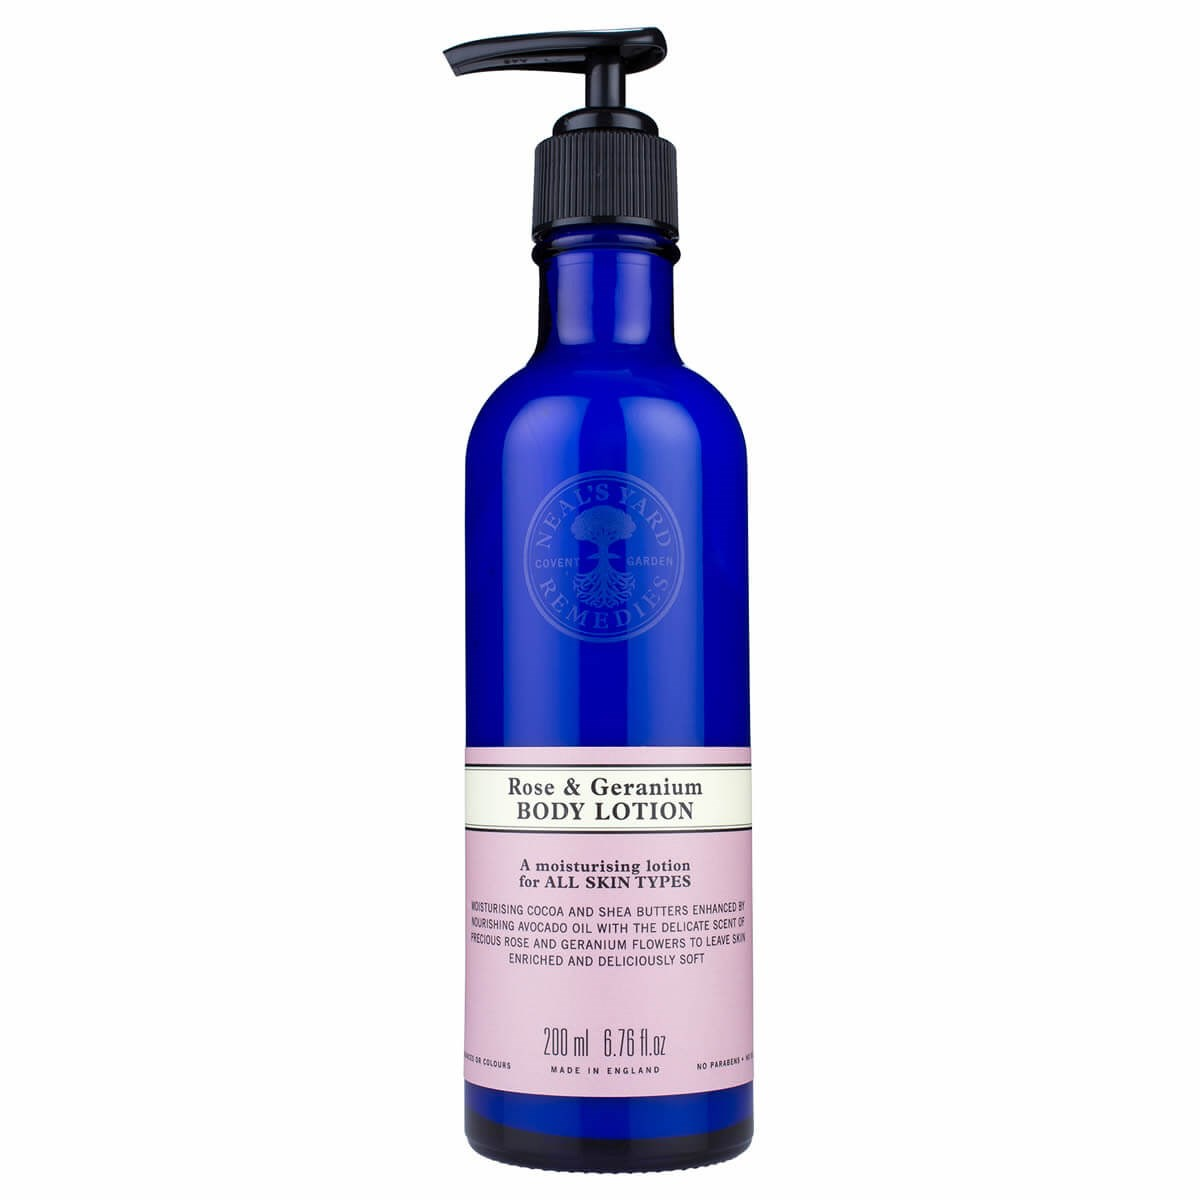 Neal's Yard Rose & Geranium Body Lotion